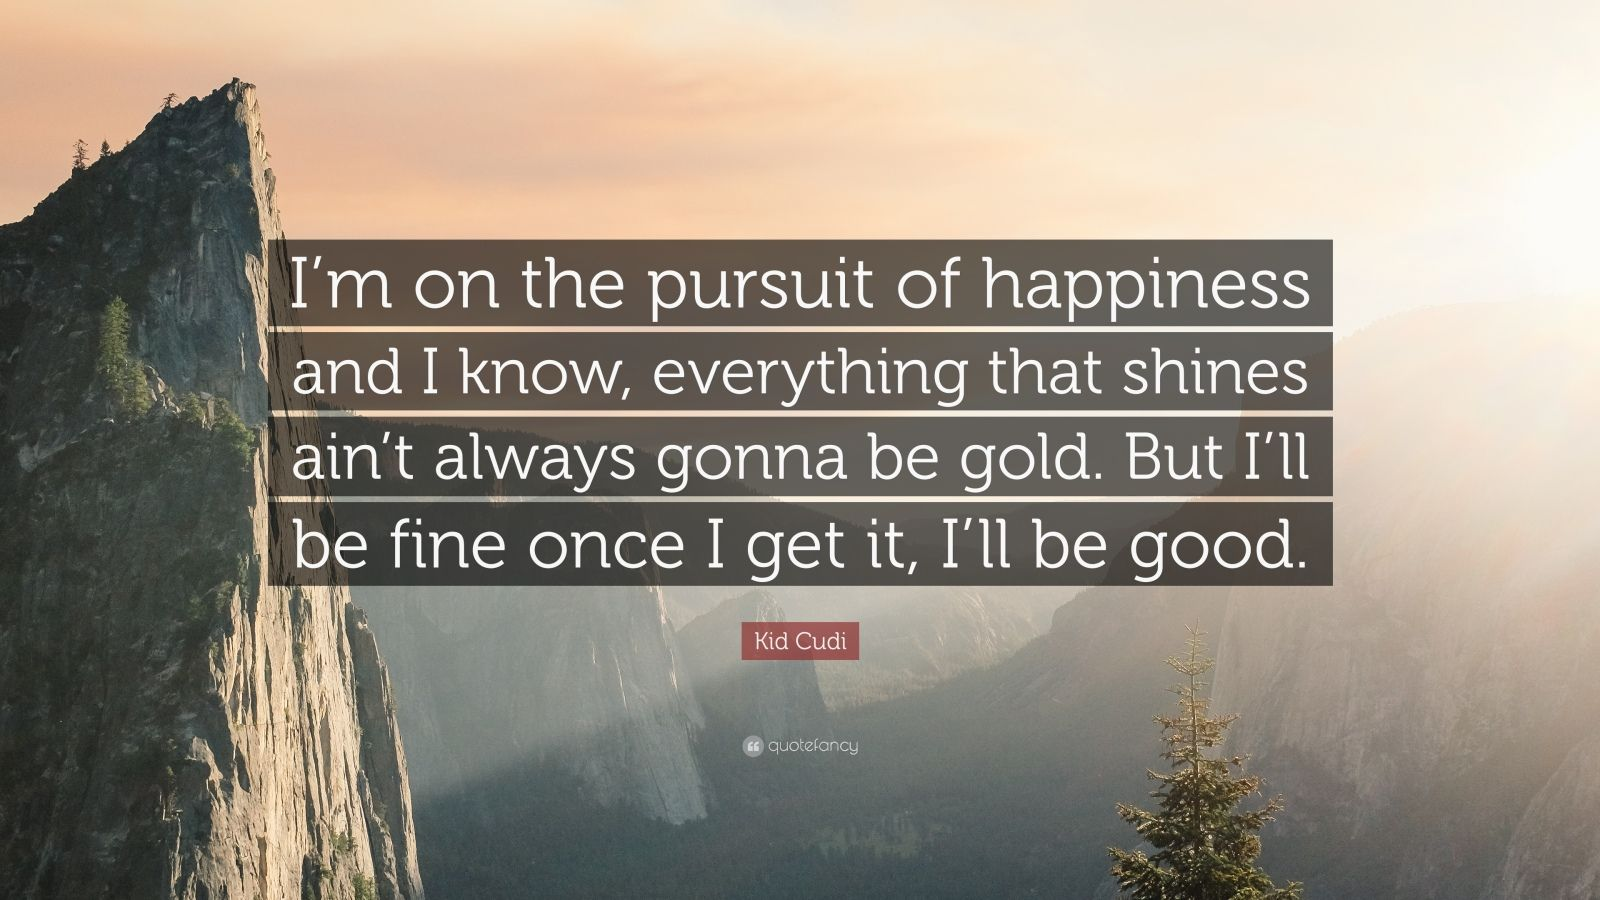 Kid Cudi Quotes 93 Wallpapers